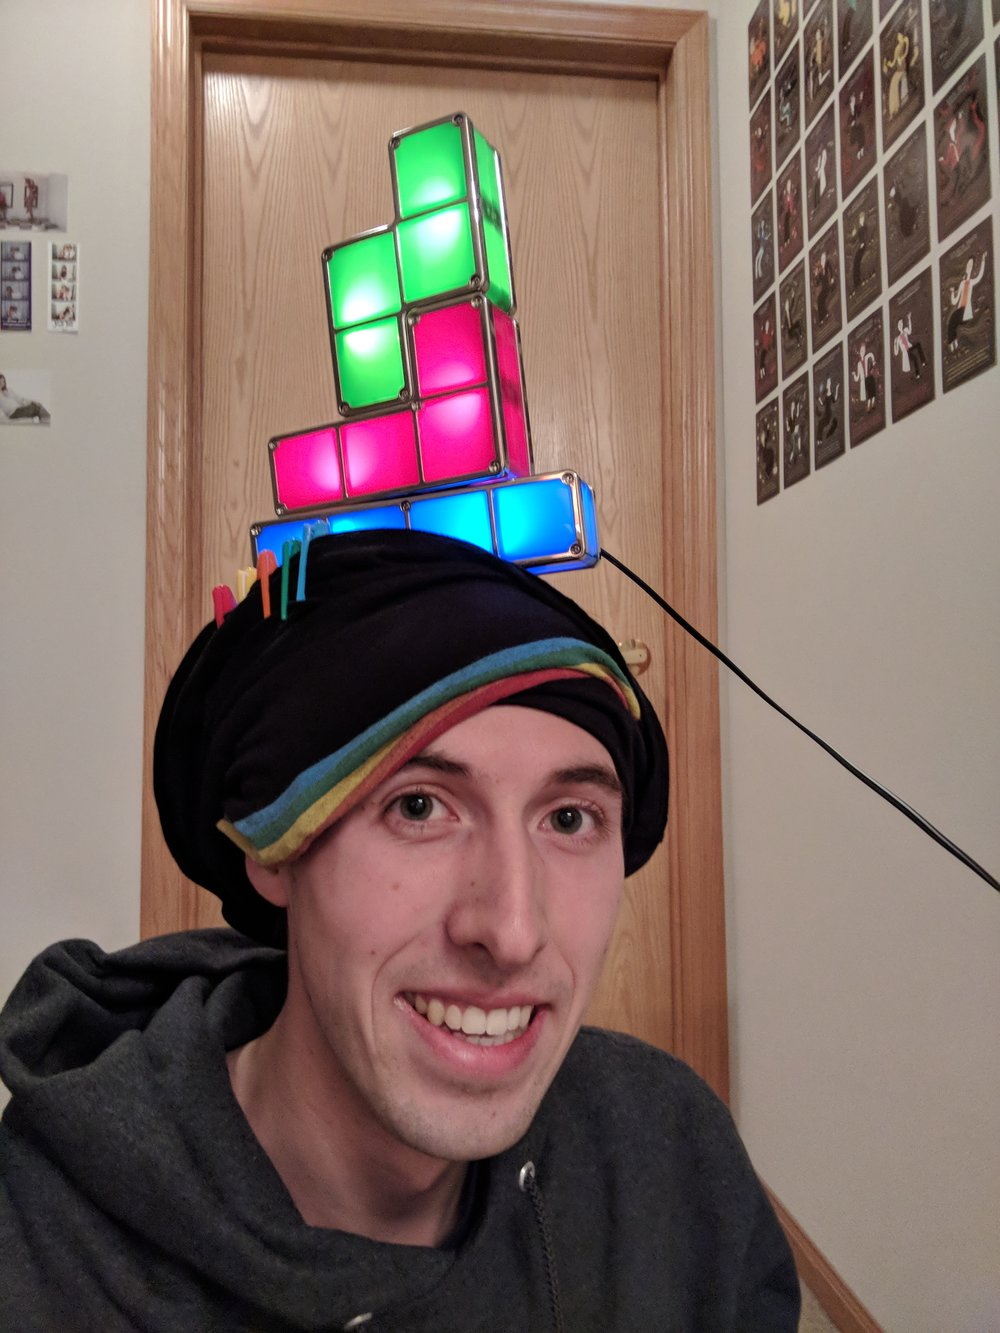 josh_prototyped_a_hat.jpg